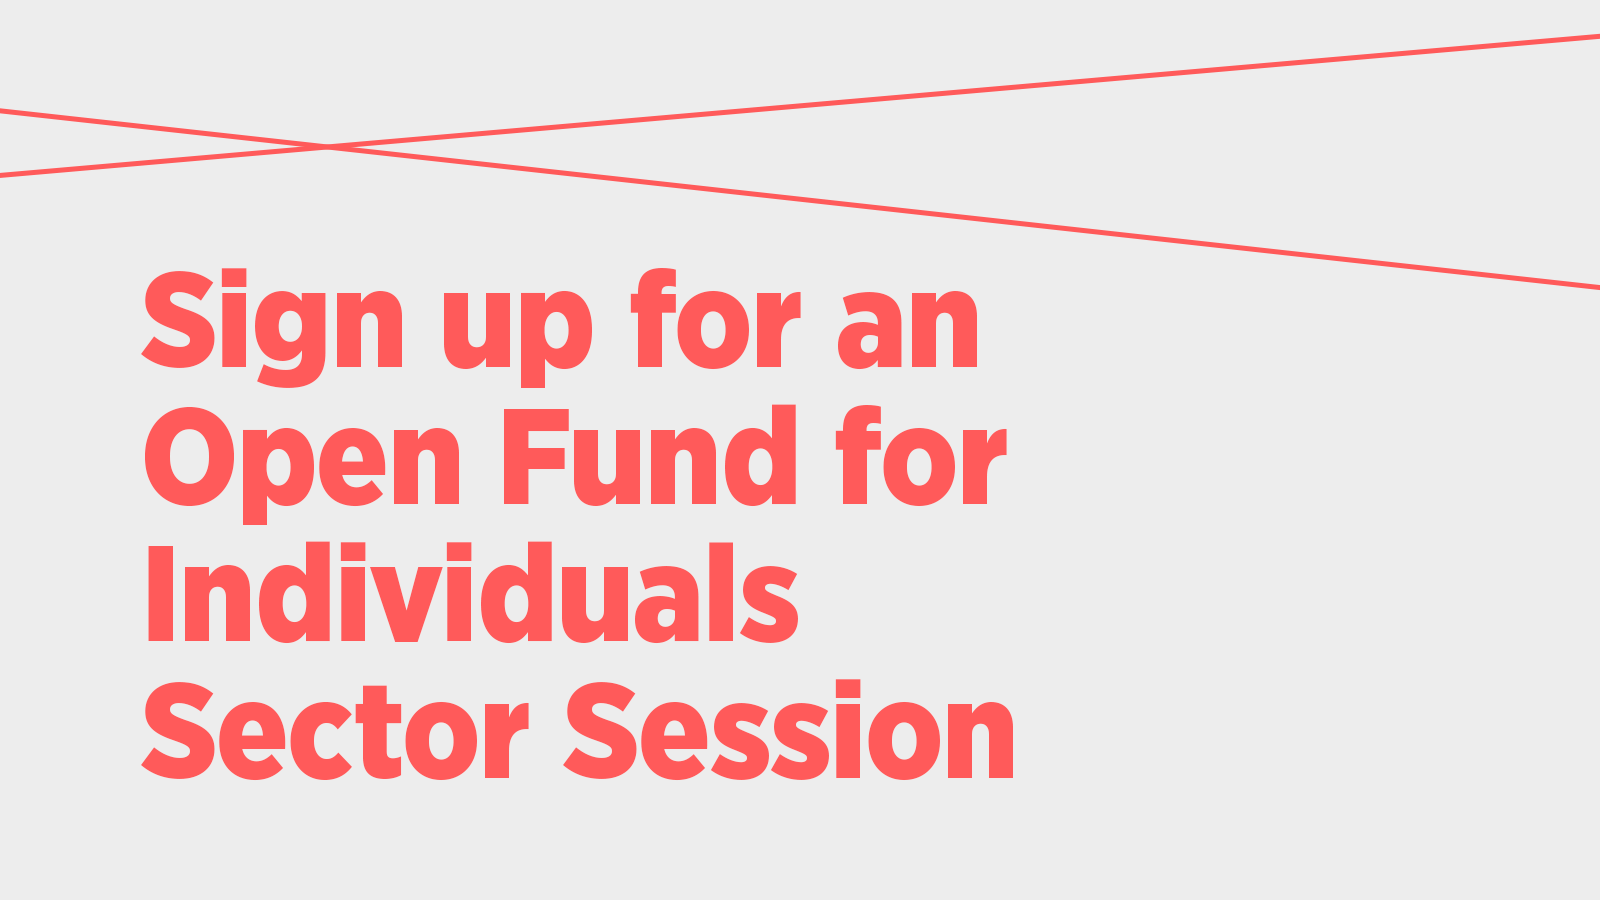 Sign up for an Open Fund for Individuals Sector Session